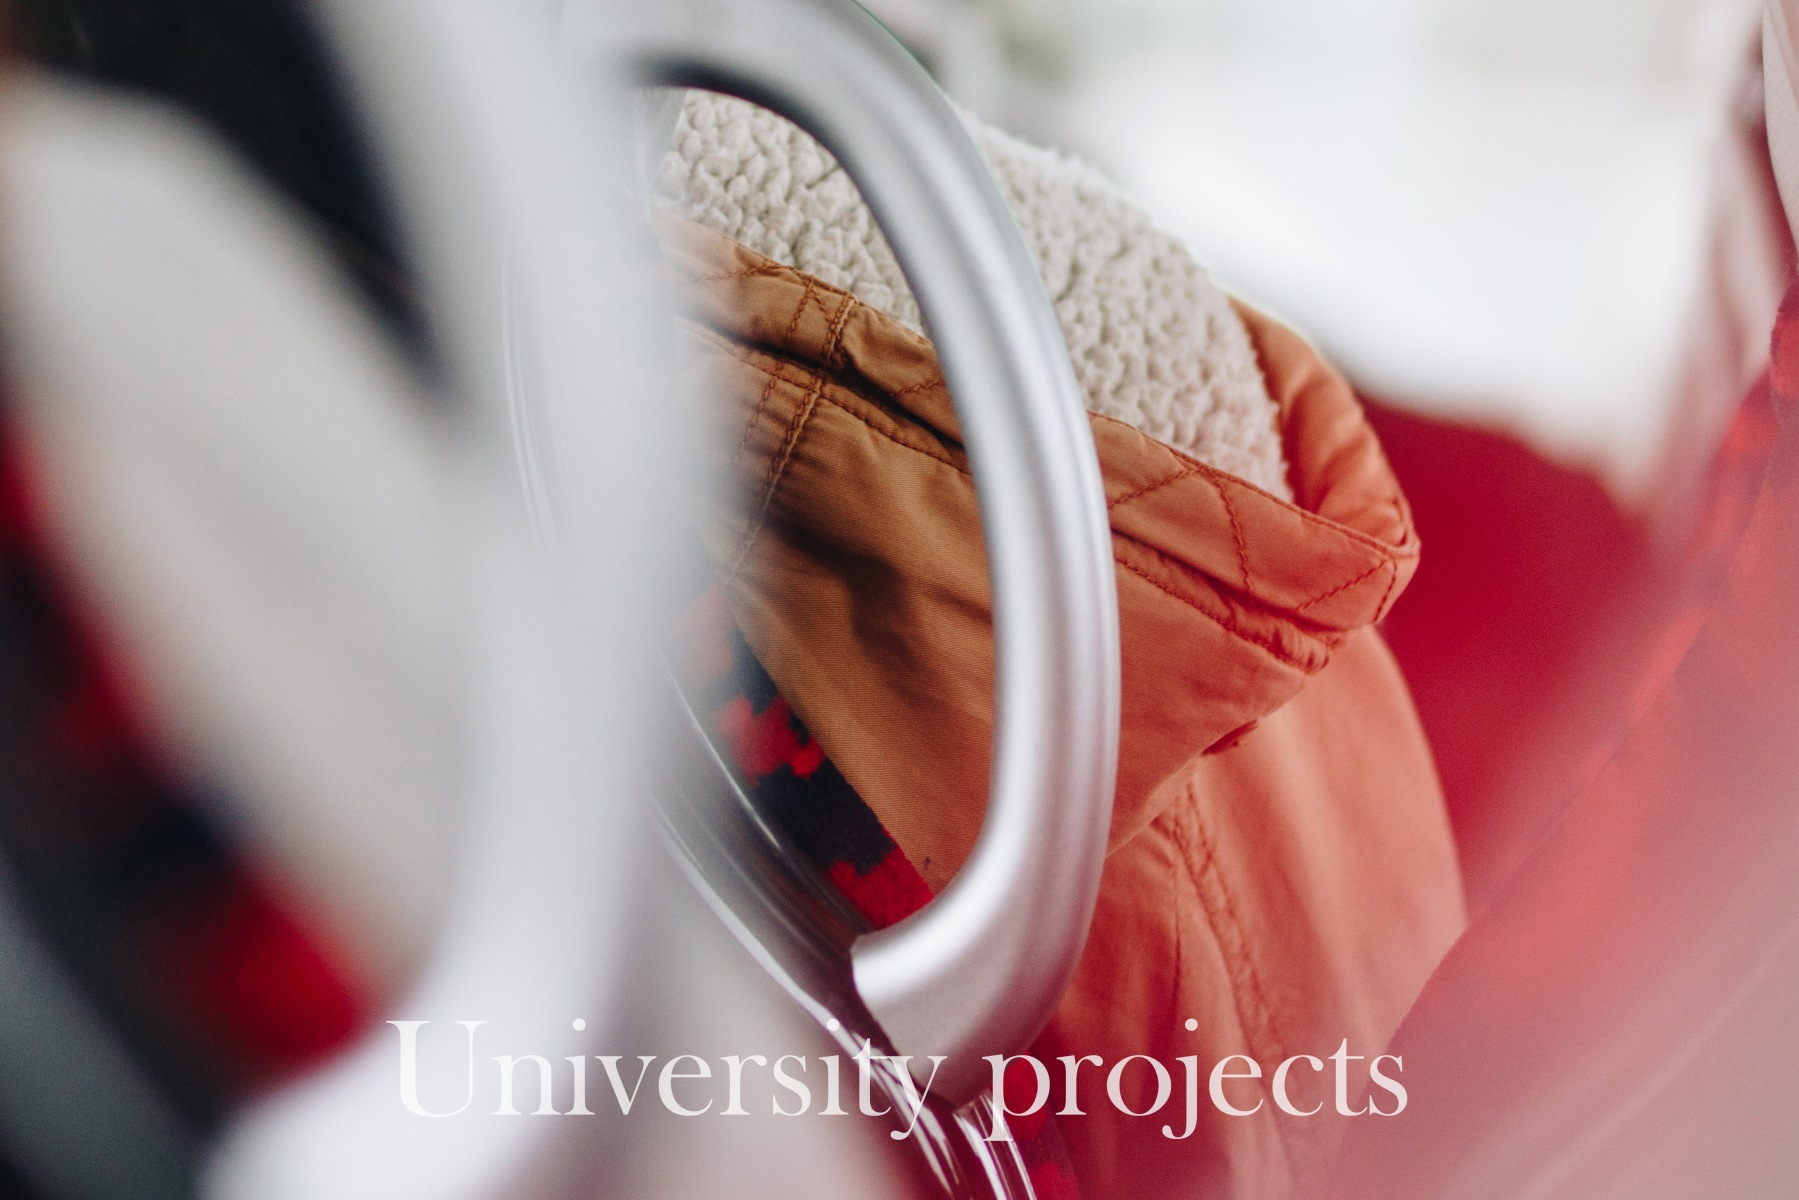 28. University projects